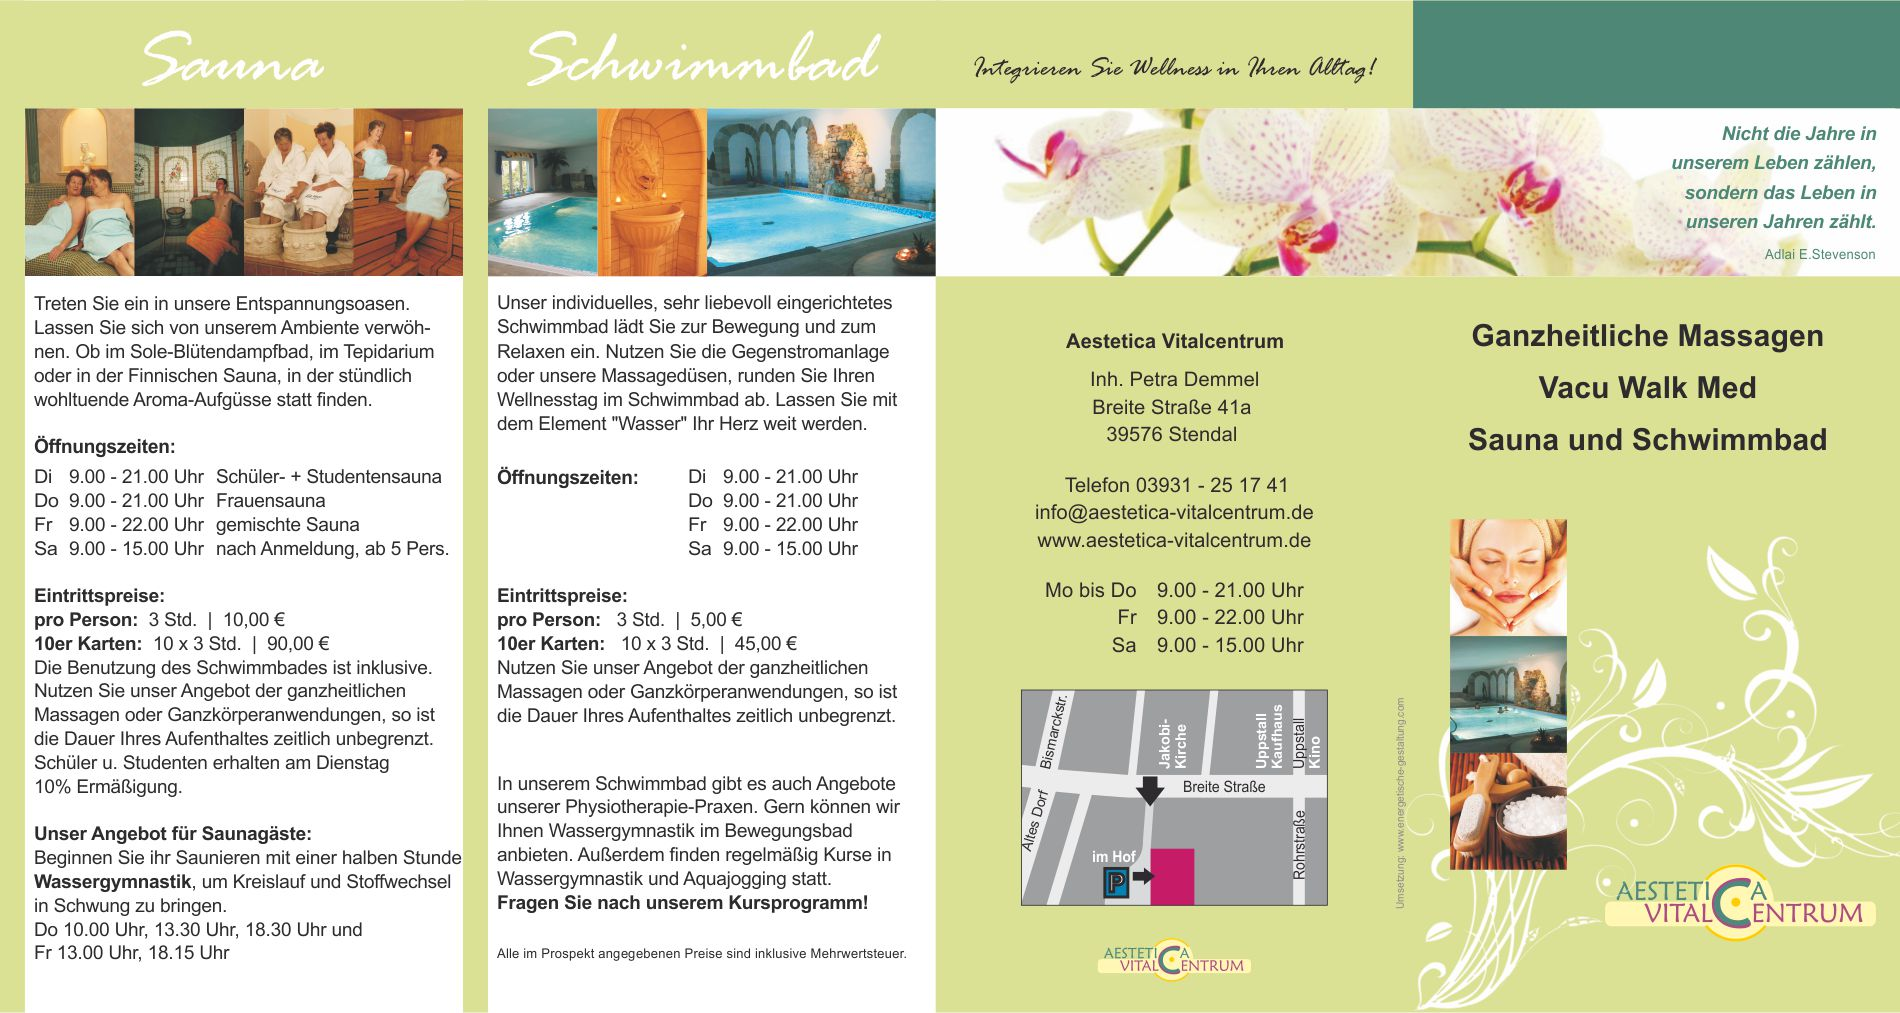 Print – Flyer Aestetica Vitalcentrum, Massagen